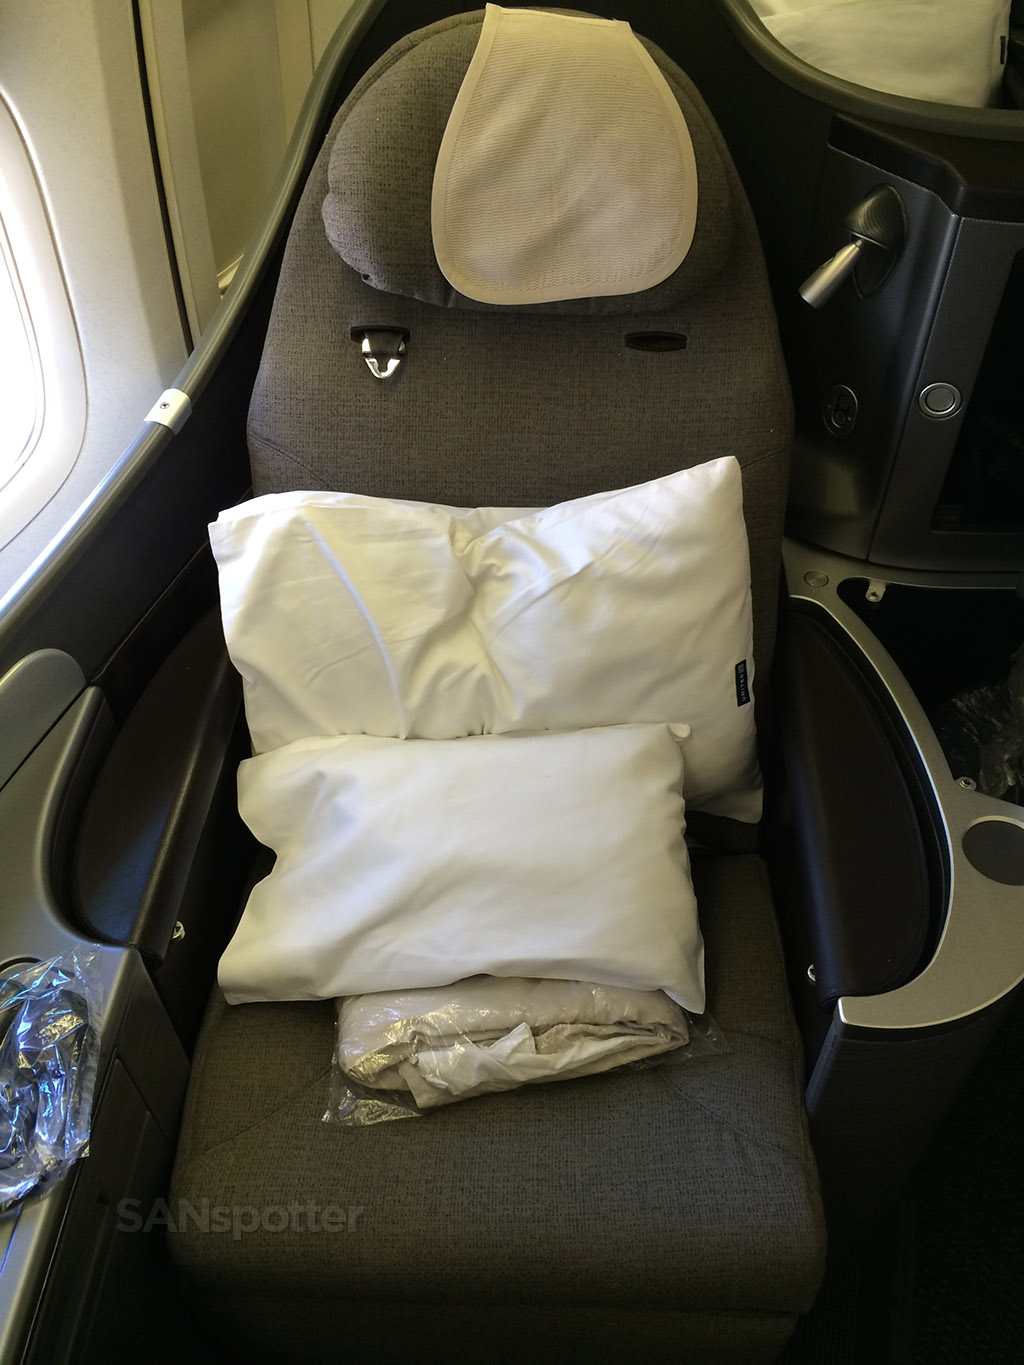 united global first pillows and blankets